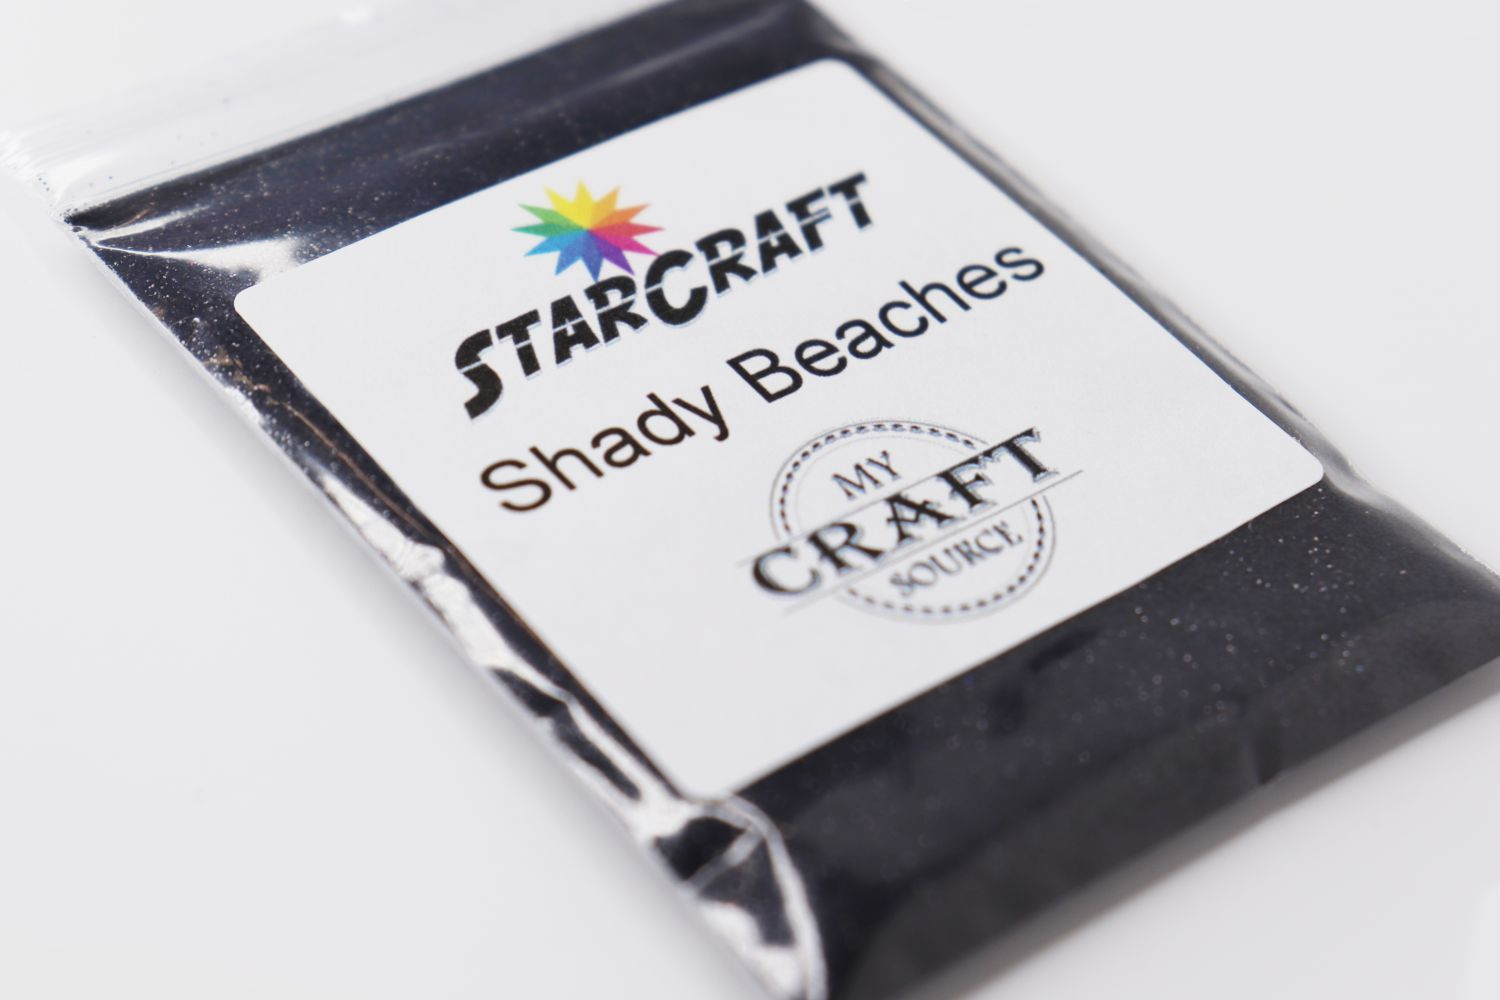 StarCraft Metallic Glitter - Shady Beaches - 0.5 oz